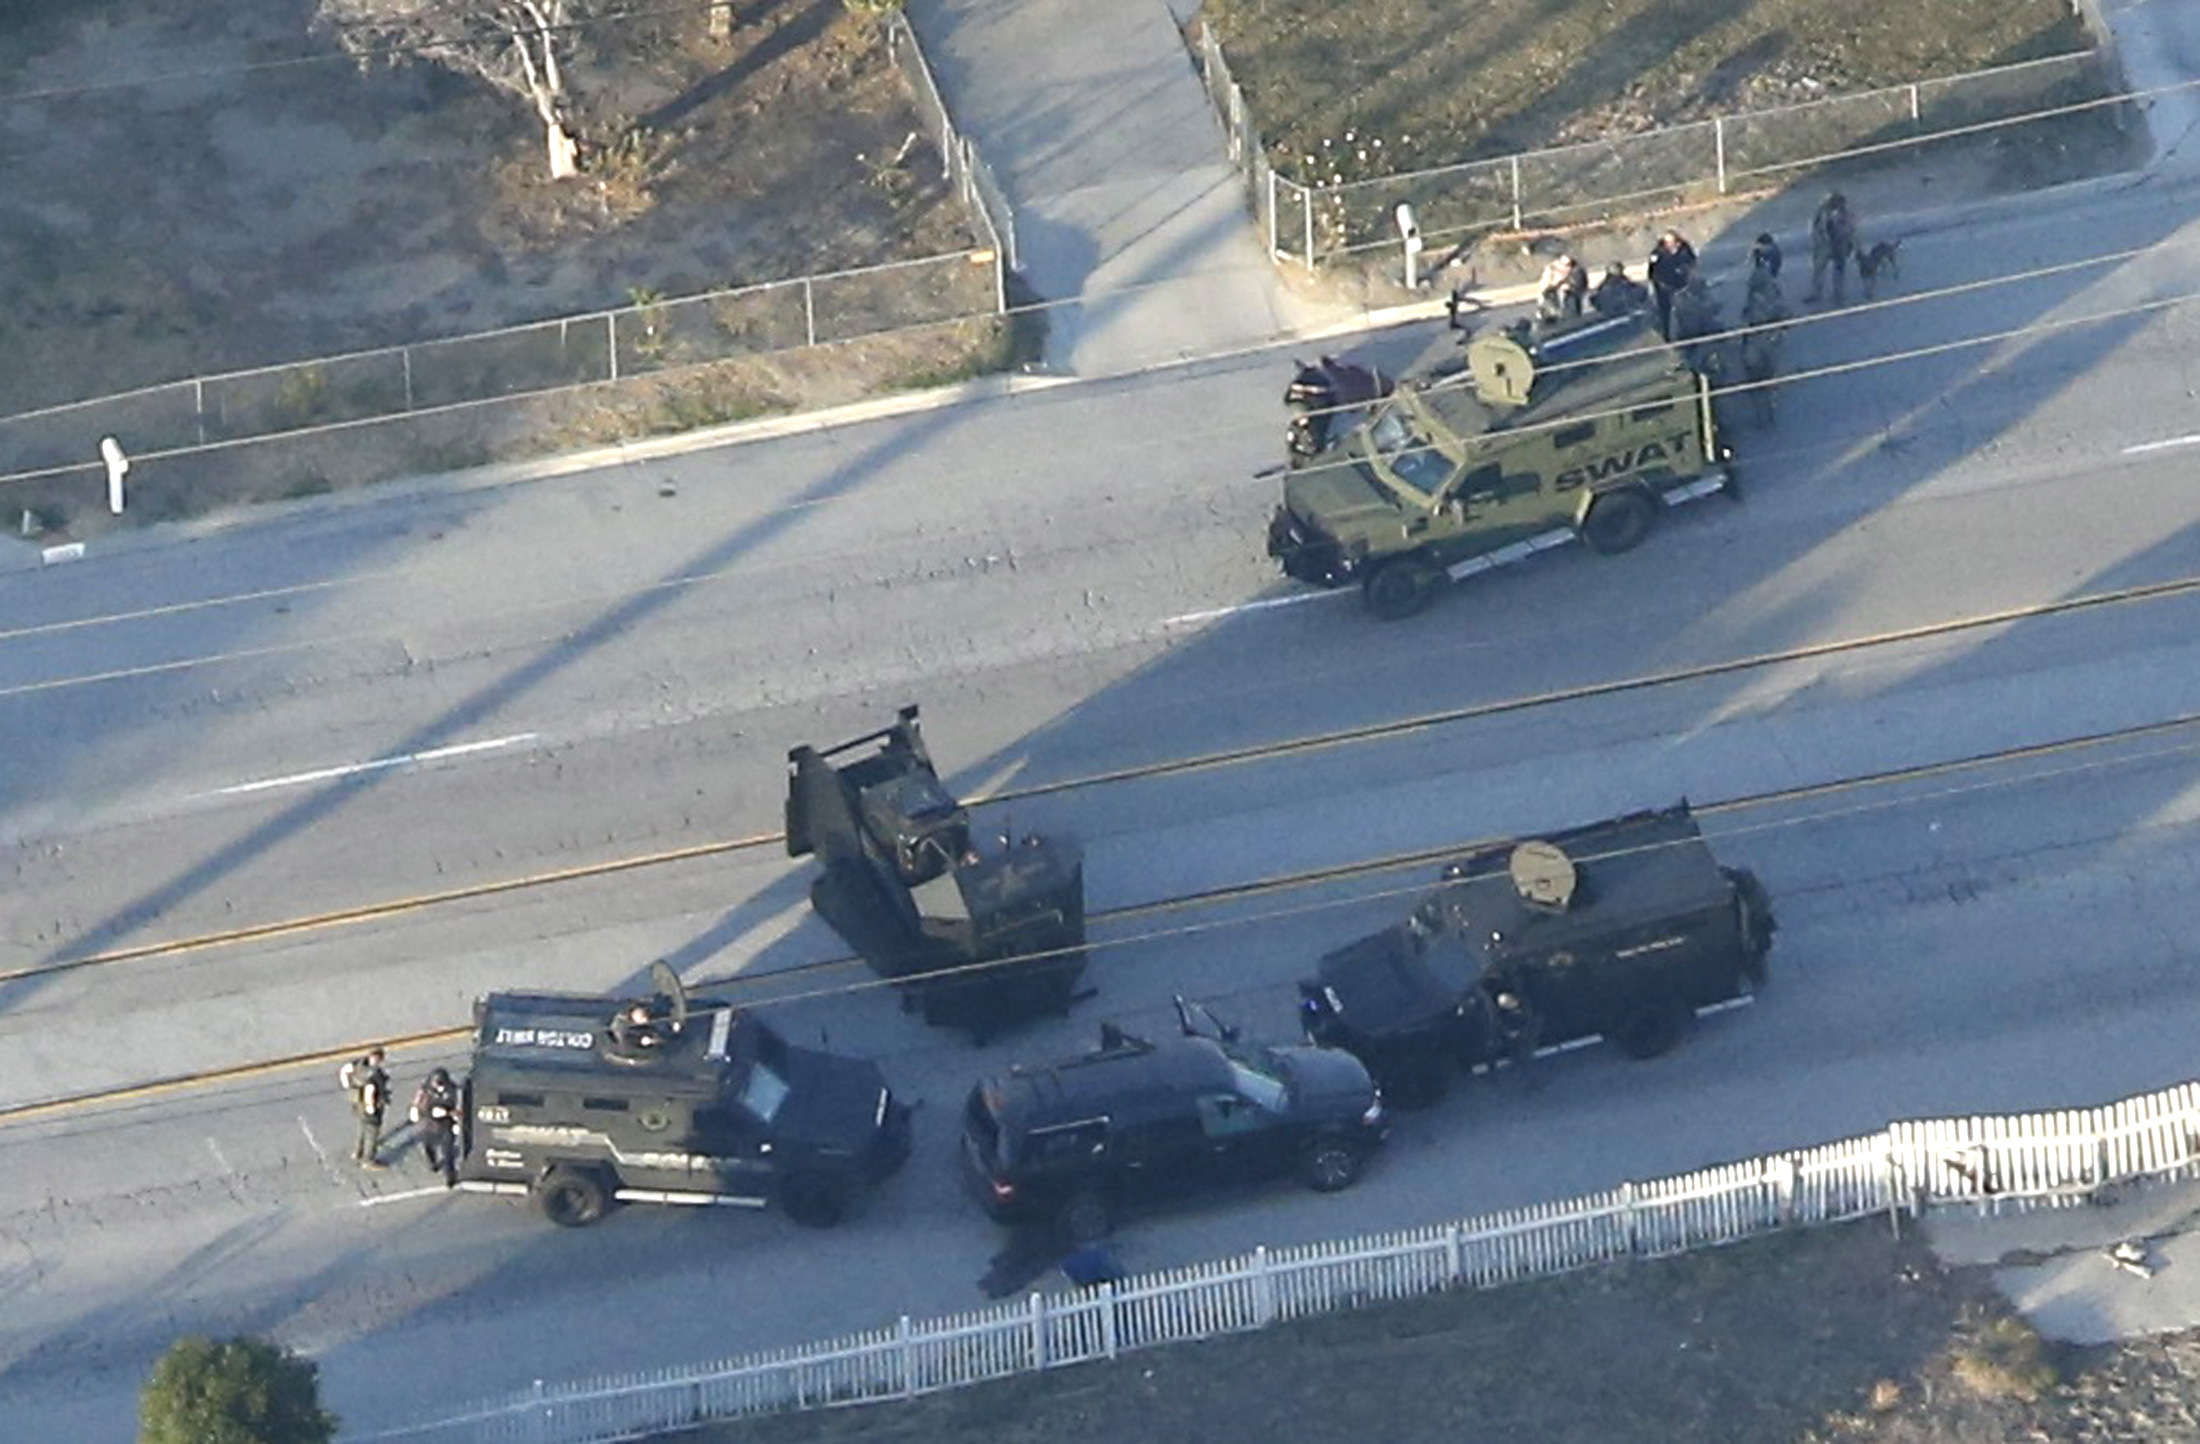 An SUV with its windows shot out that police suspect was the getaway vehicle from at the scene of a shooting in San Bernardino, California is shown in this aerial photo on Dec. 2, 2015.